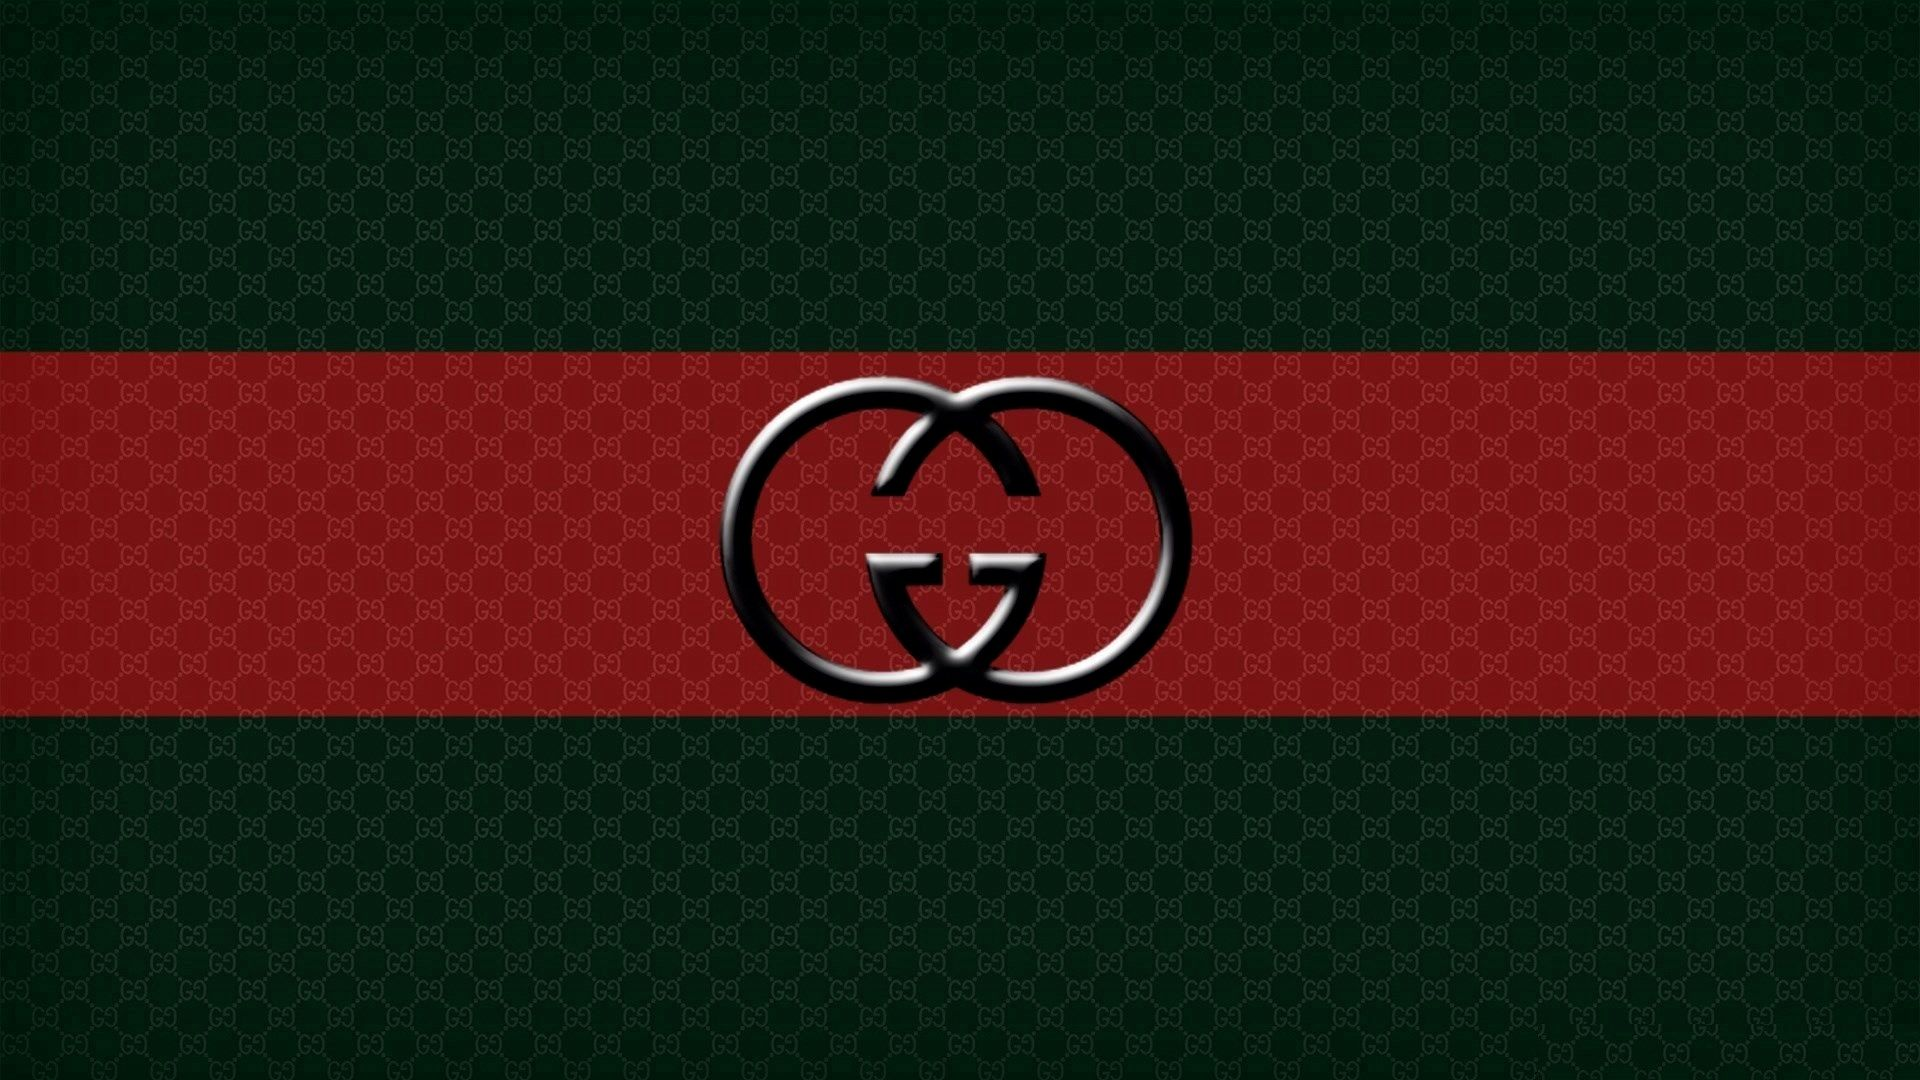 Gucci Wallpaper 4K Iphone Gallery Check more at https